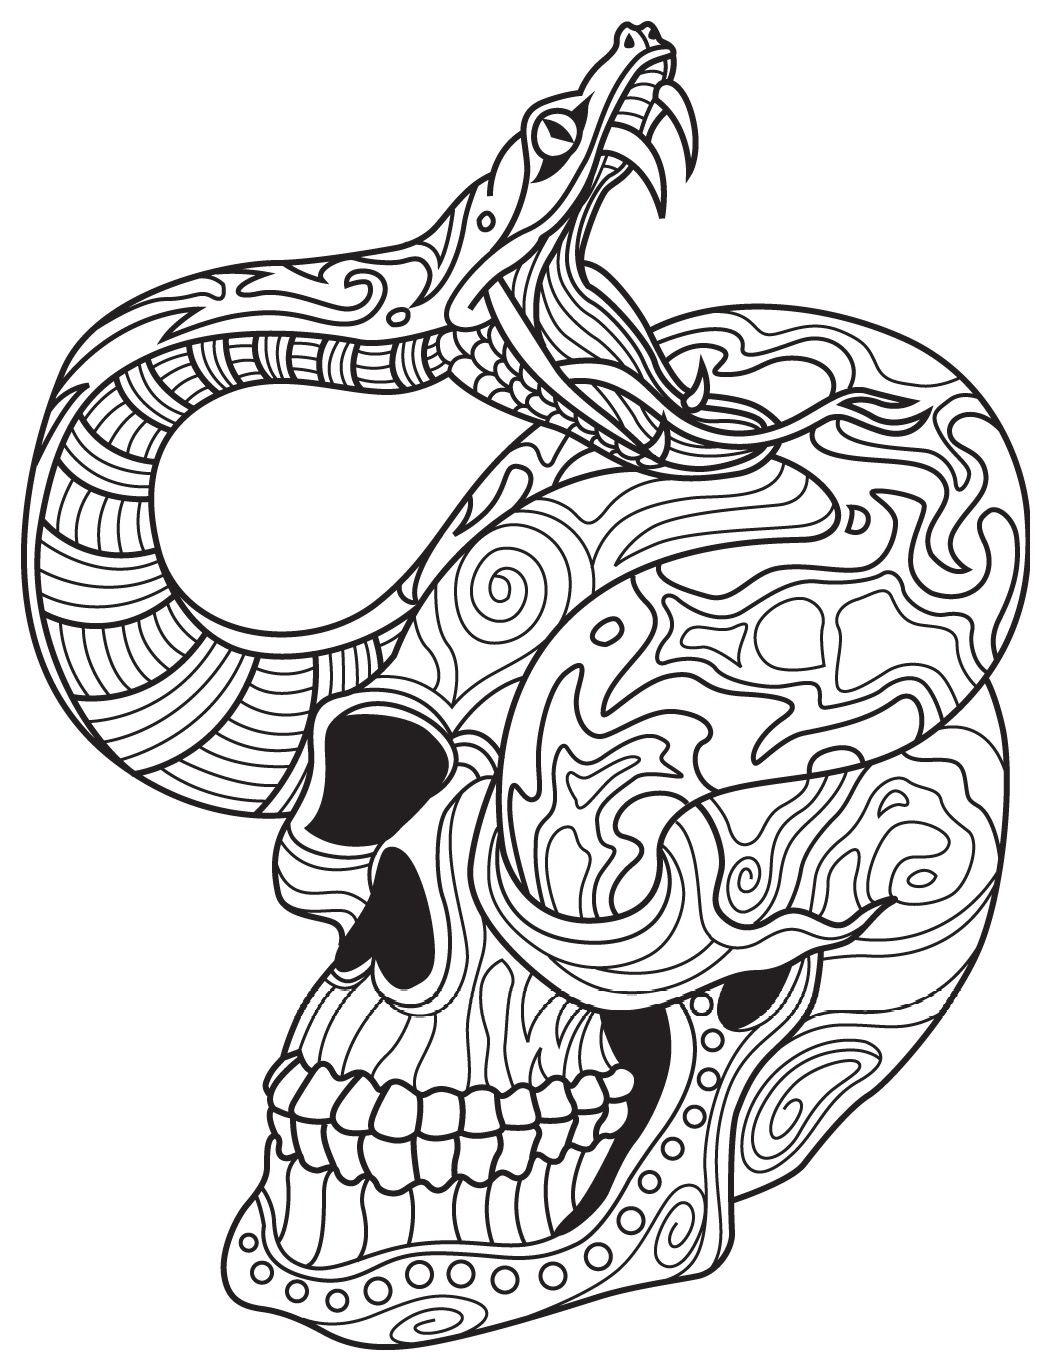 snake and skull colorish coloring book app for adults by goodsofttech - Coloring Book App For Adults